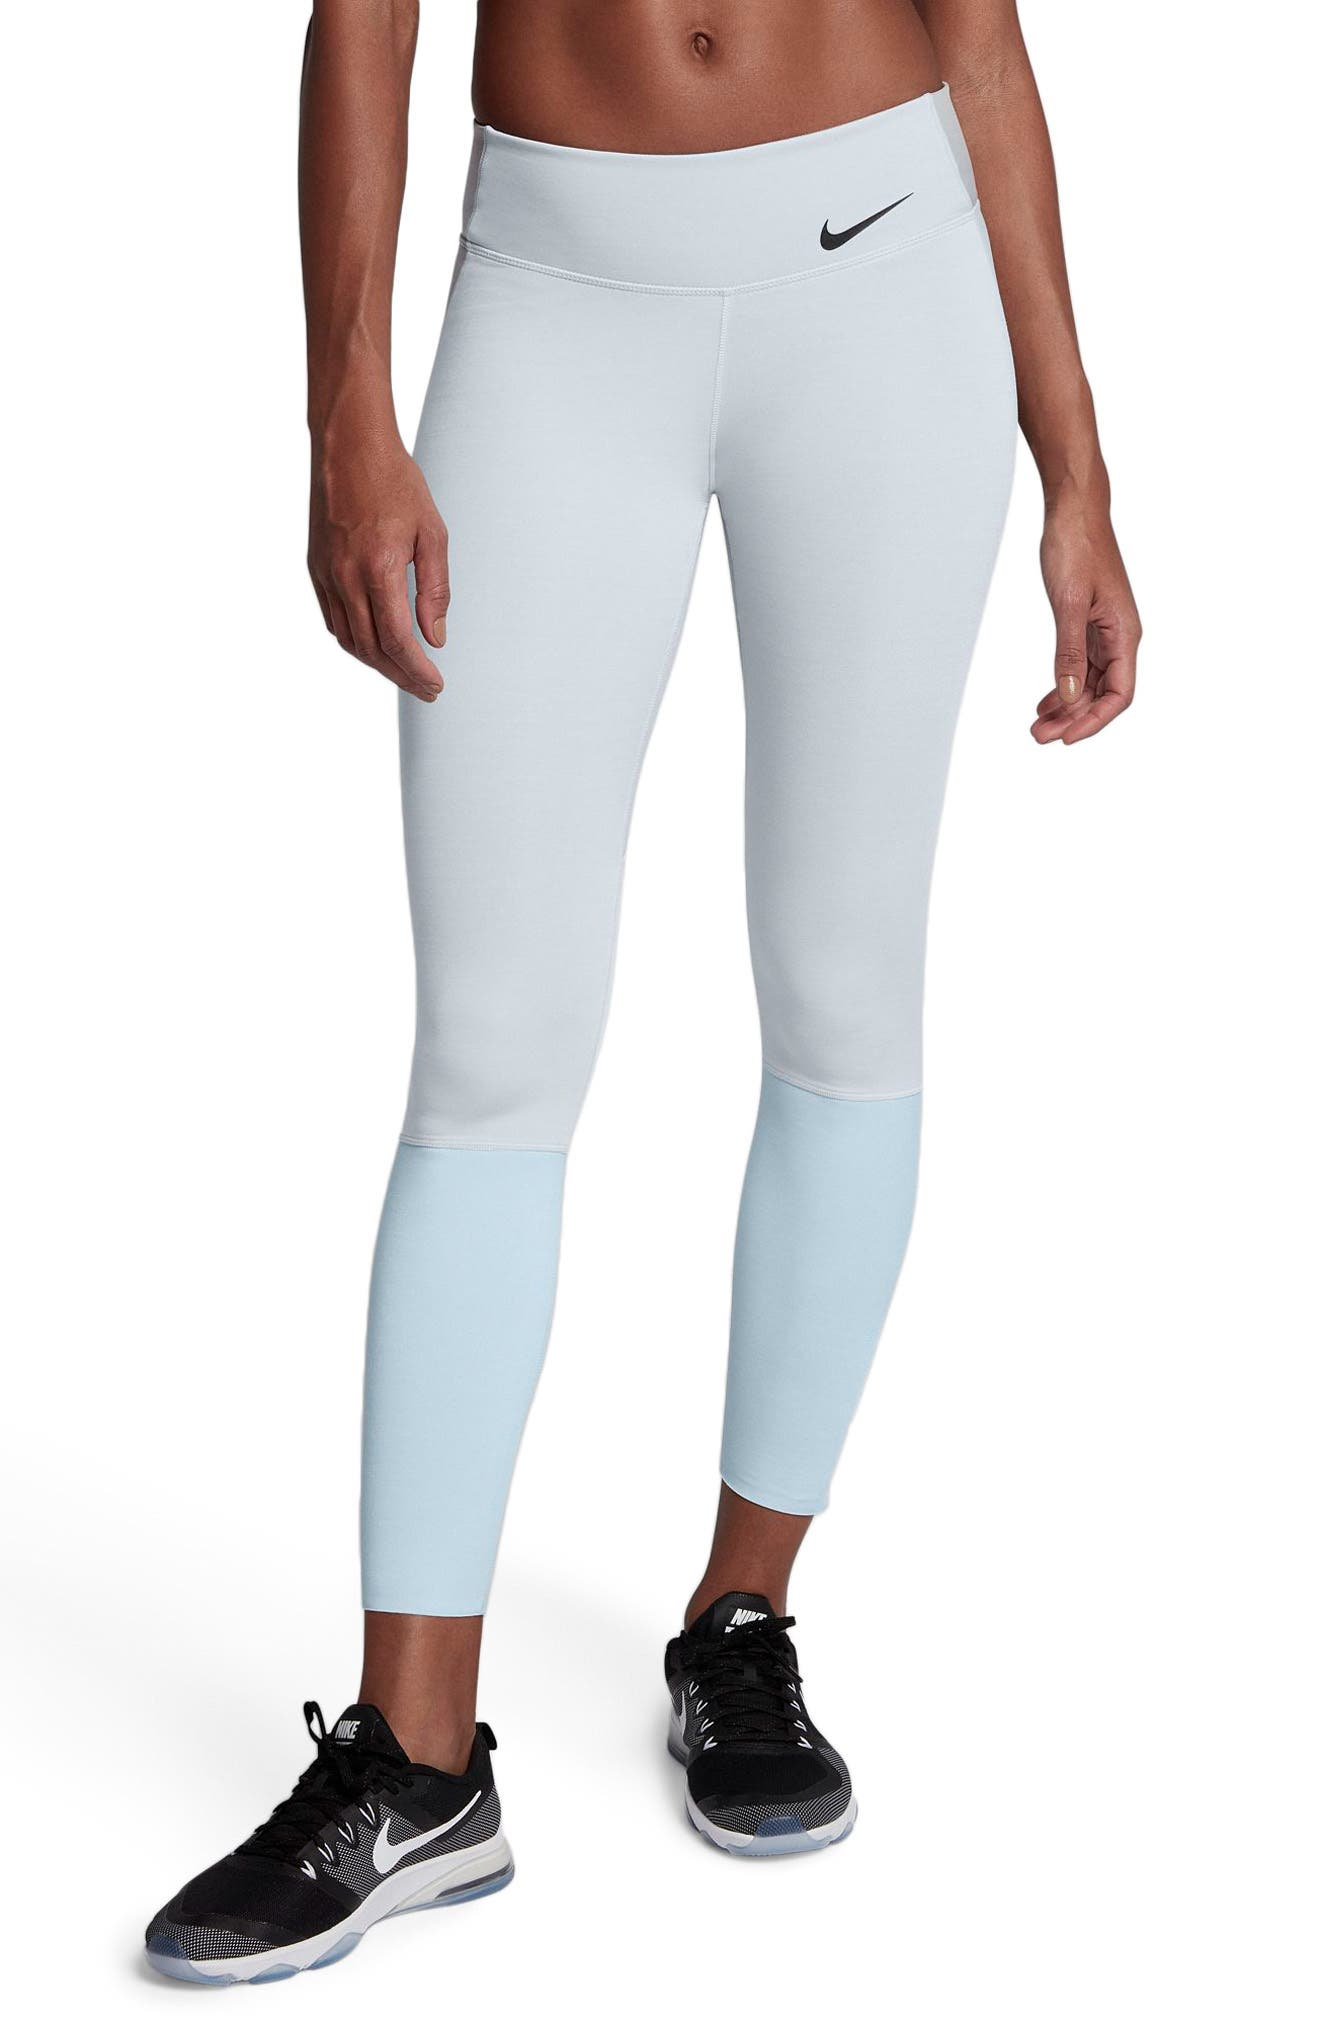 Legendary Mid Rise Zip Cuff Training Tights,                         Main,                         color, Platinum/ Heather/ Blue/ Black